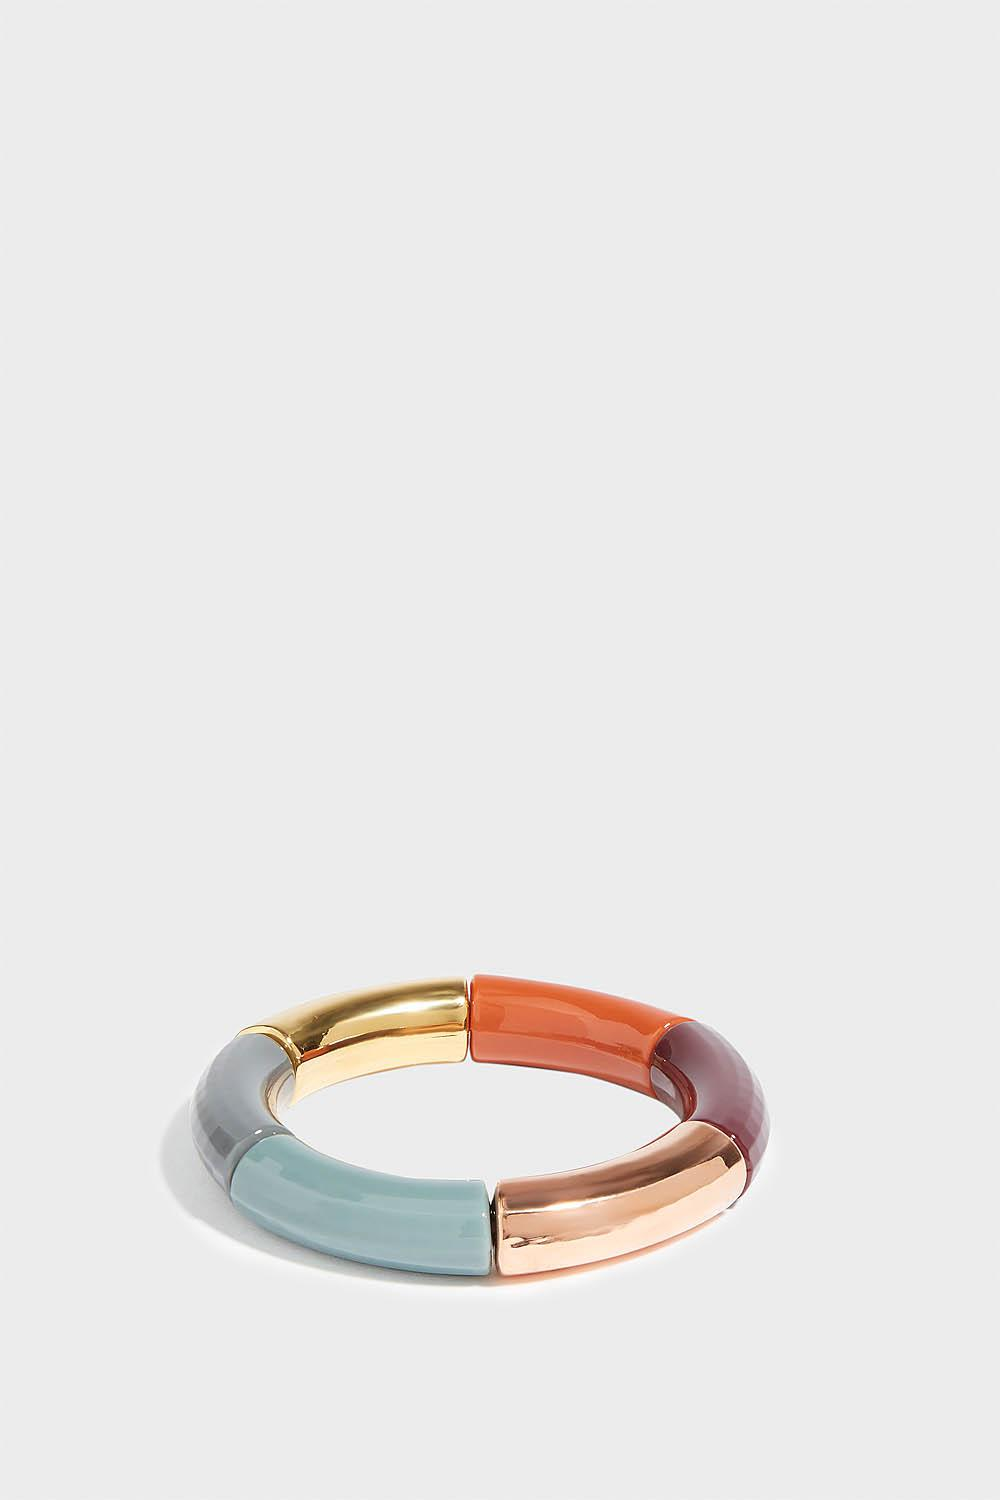 online us lenticular shop by bracelets bangles oro resin